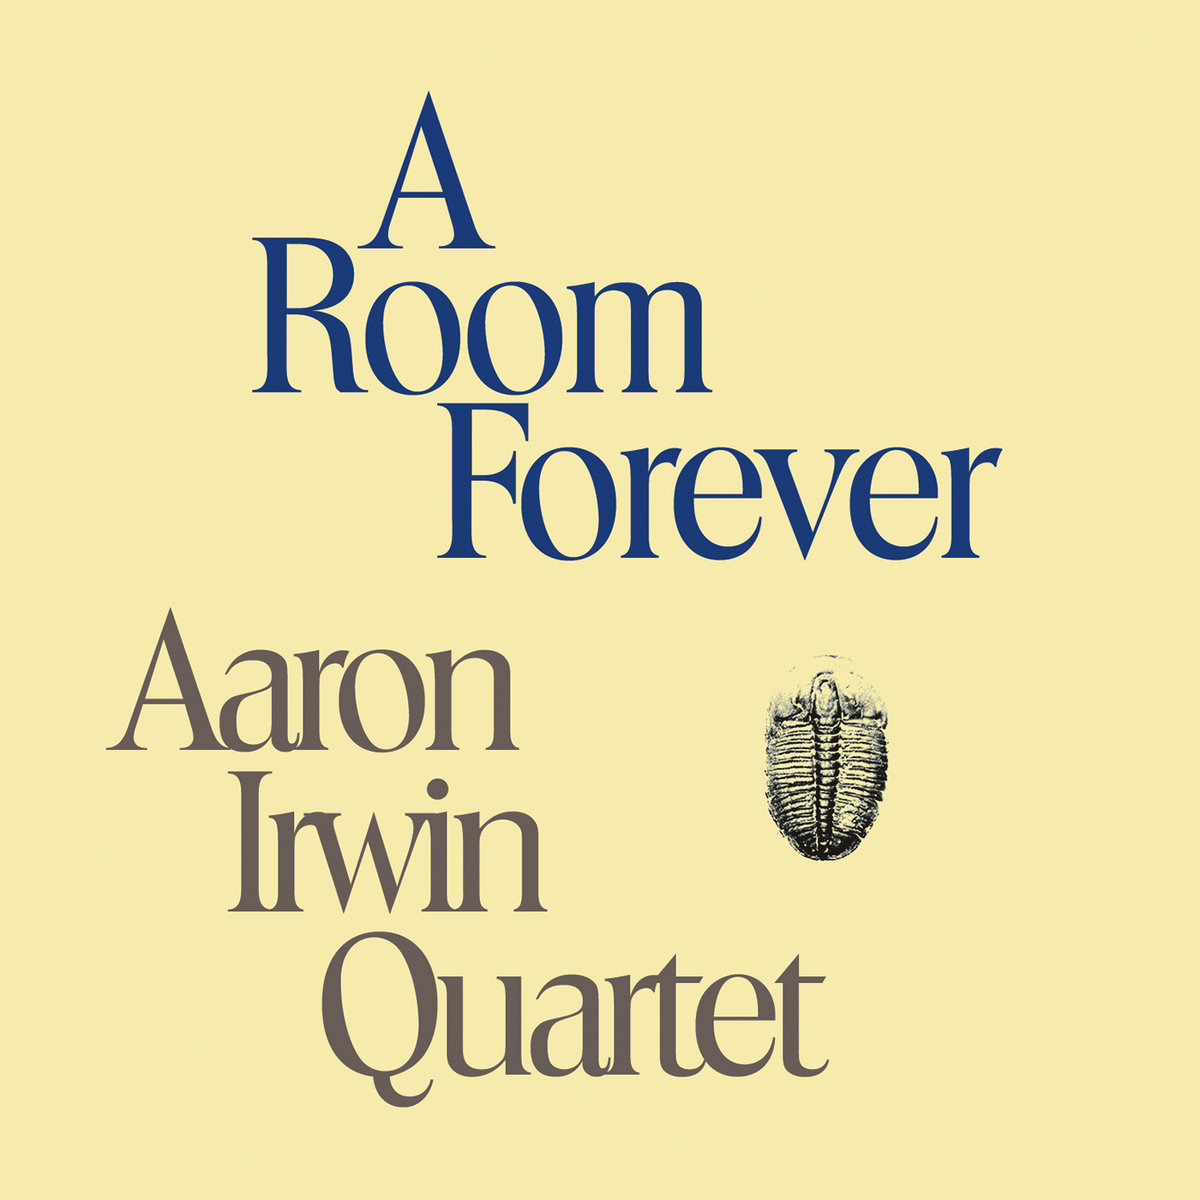 A Room Forever